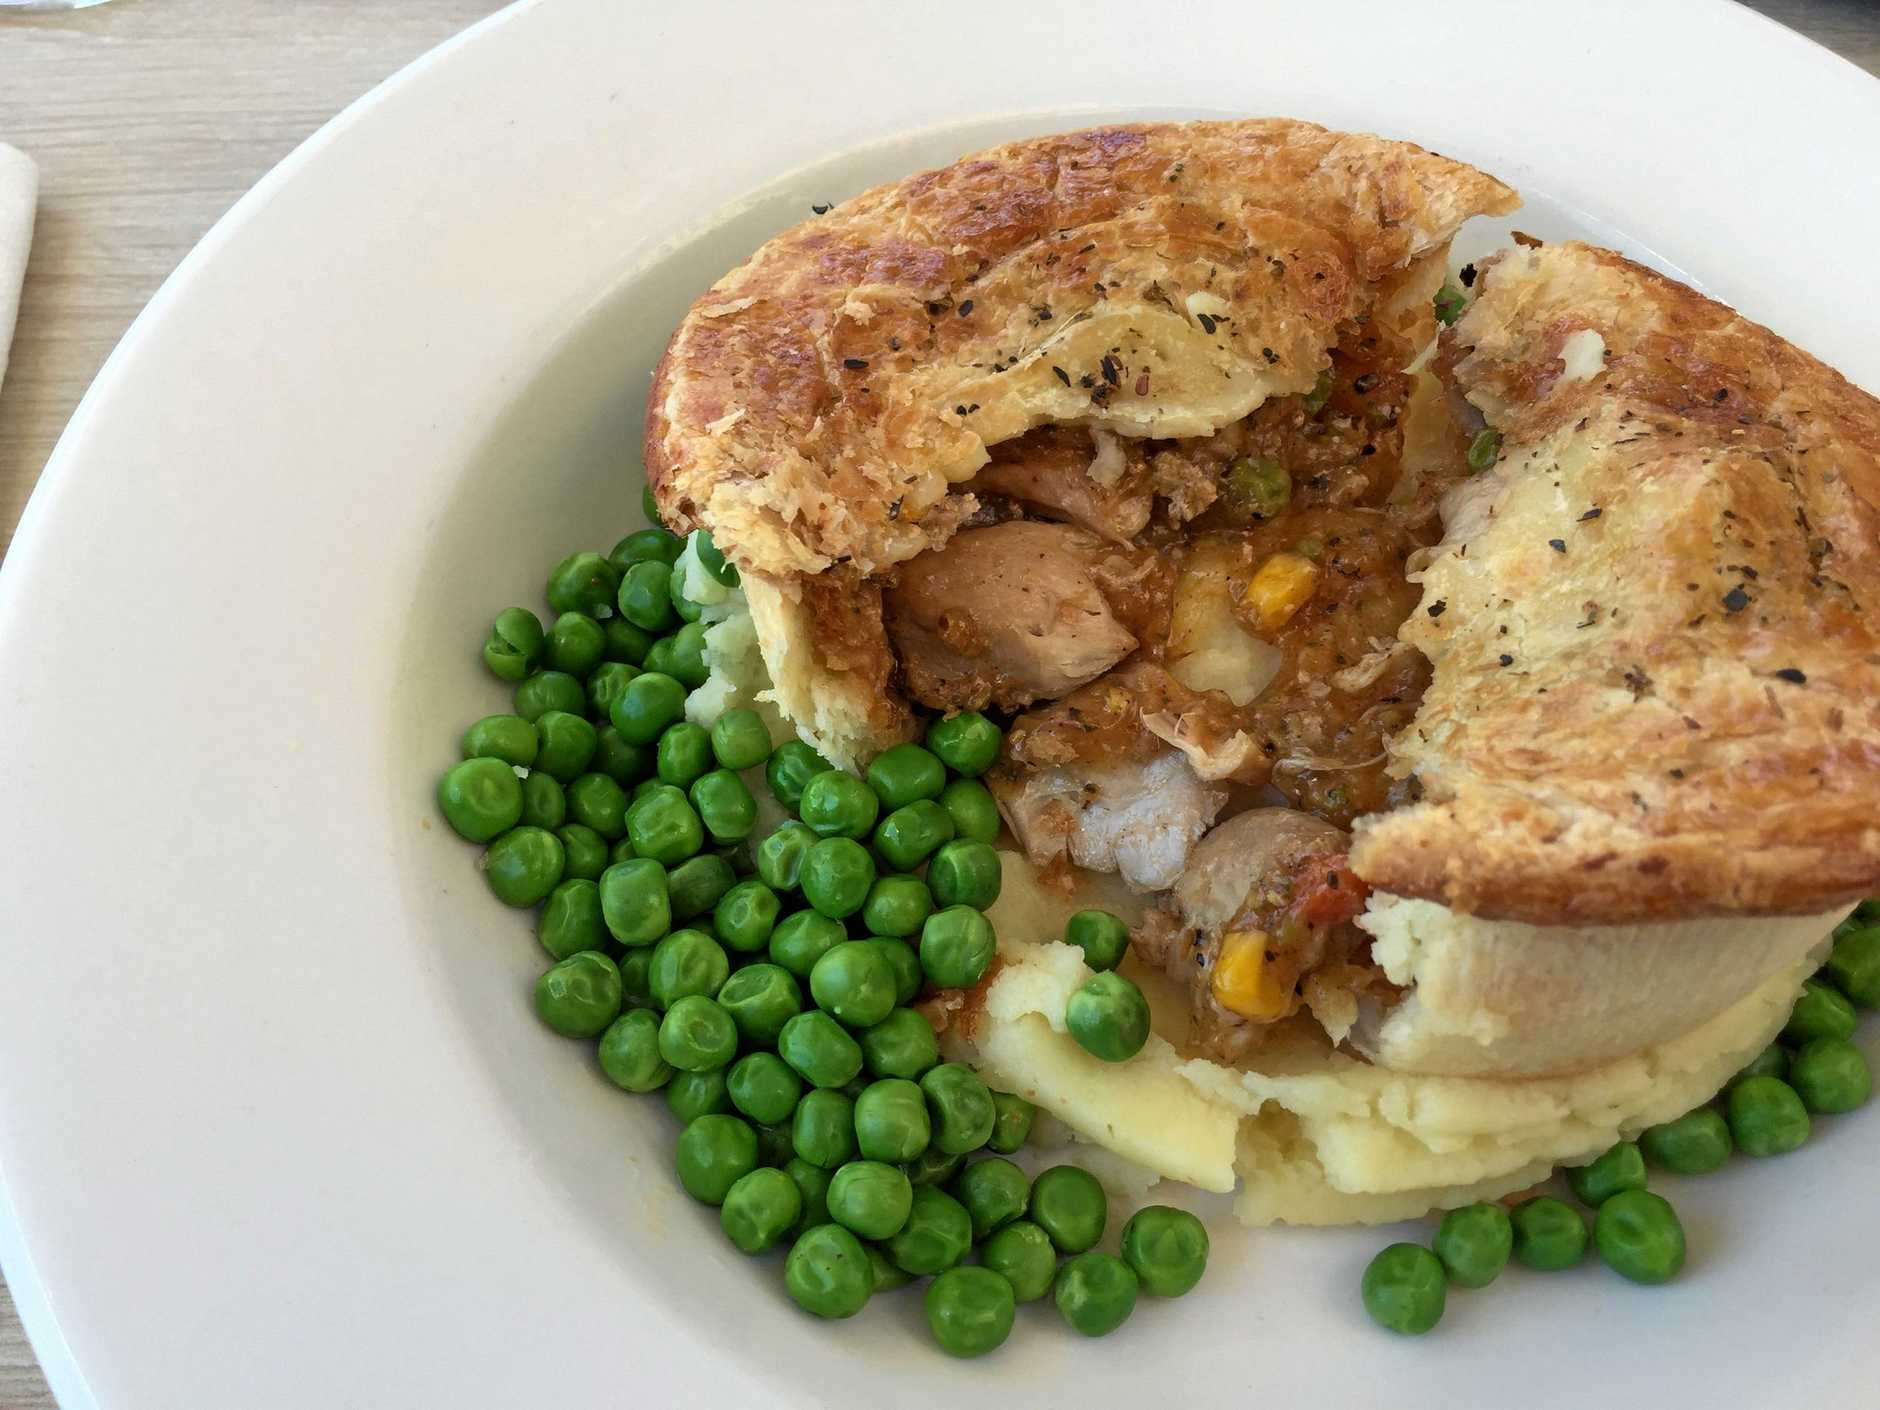 The chicken peppercorn pie from the Reef Hotel, with fluffy mash and green peas.